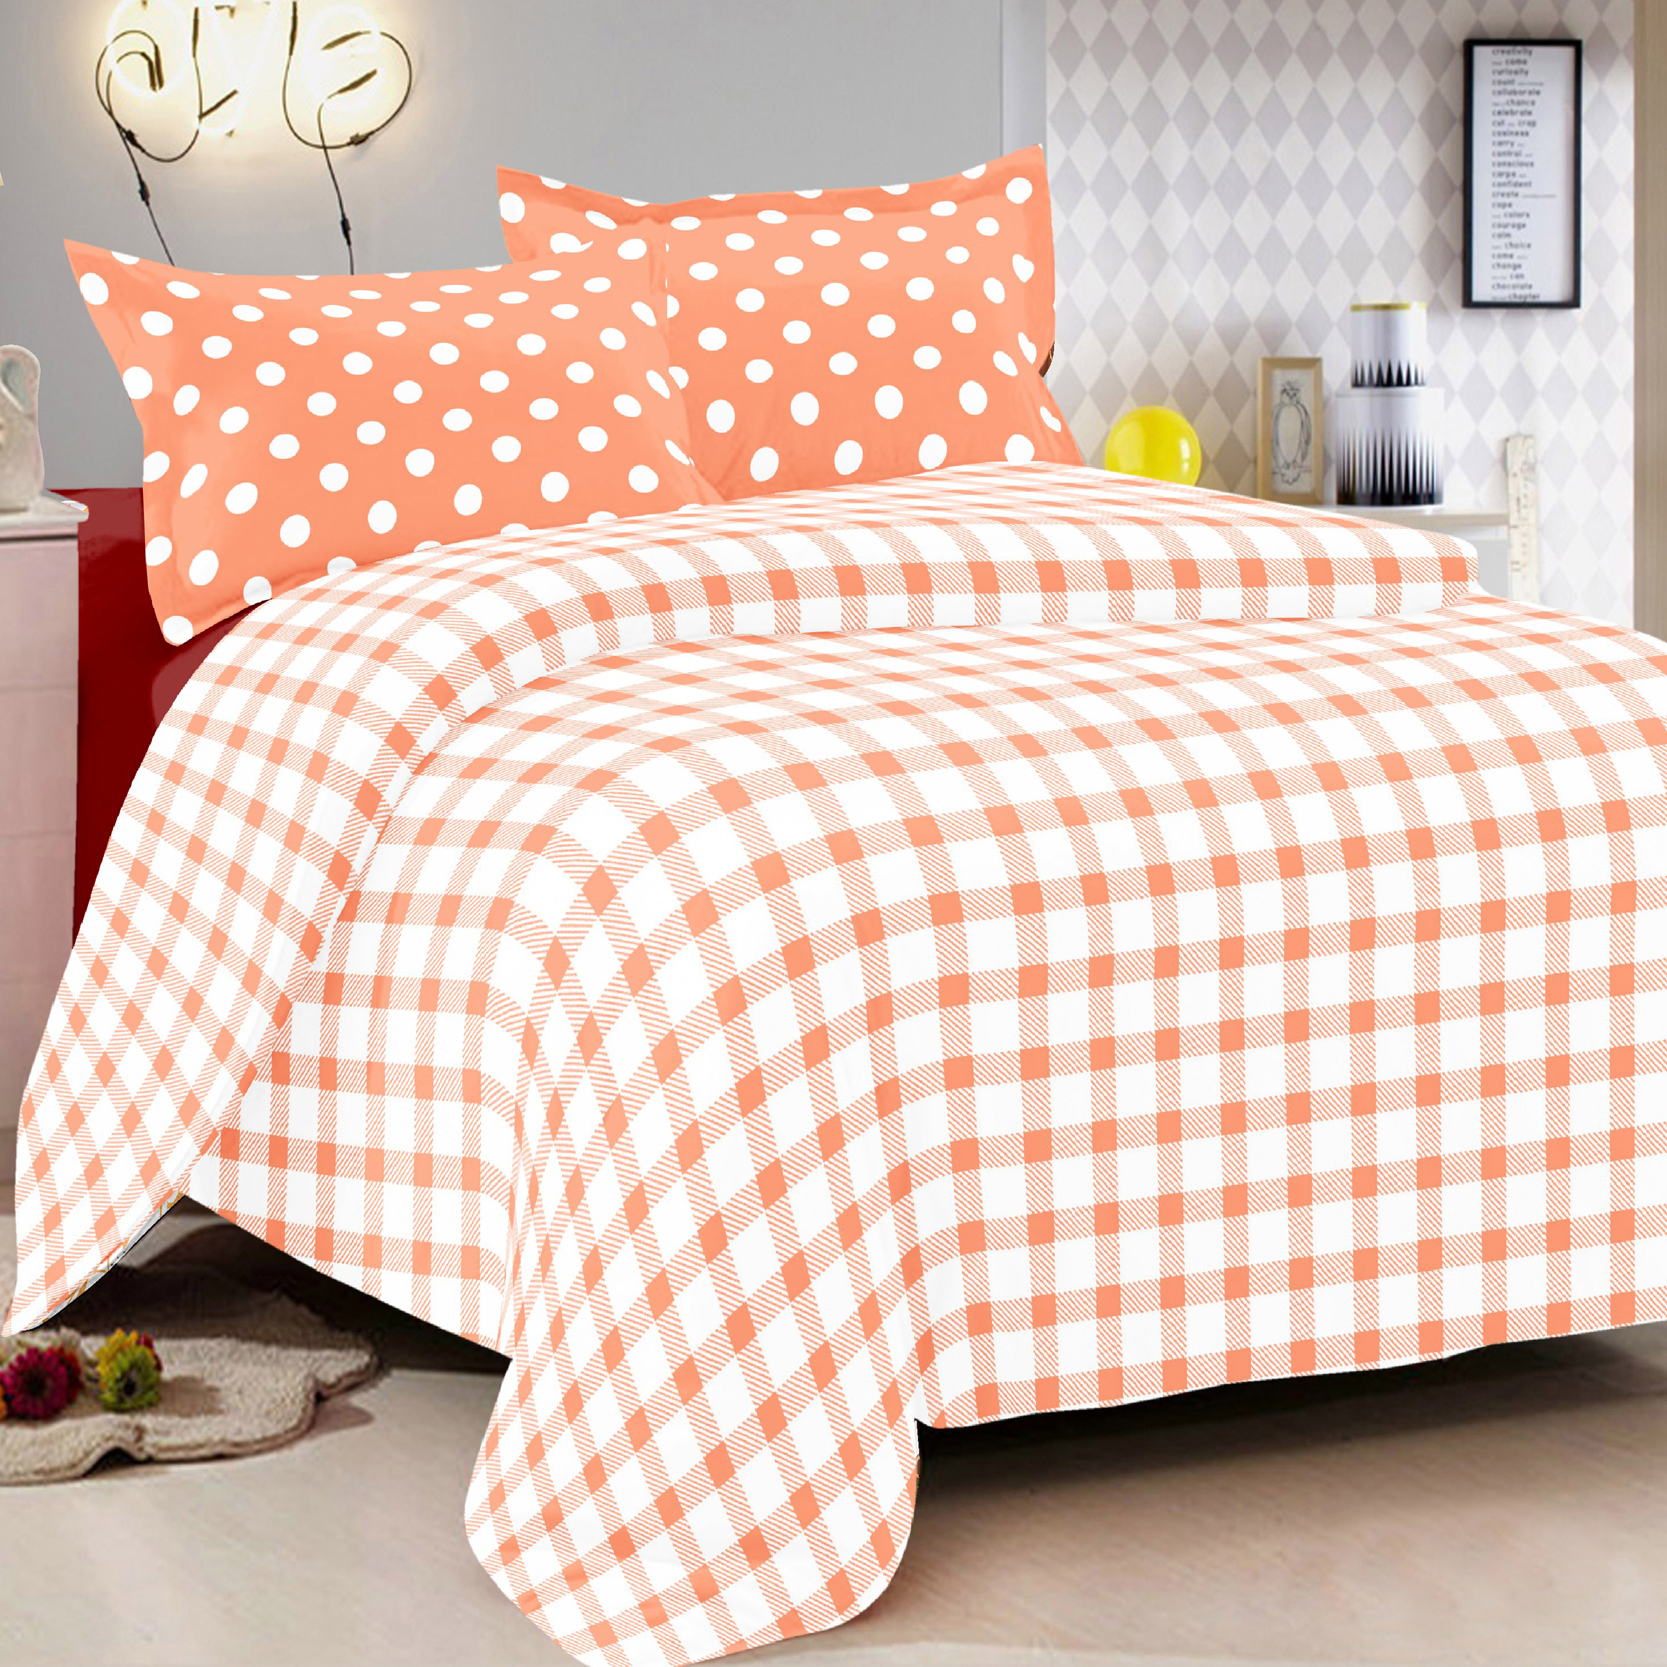 Double Bed 100 100 Cotton Orange Checks Double Bed Sheet With 2 Pillow Covers